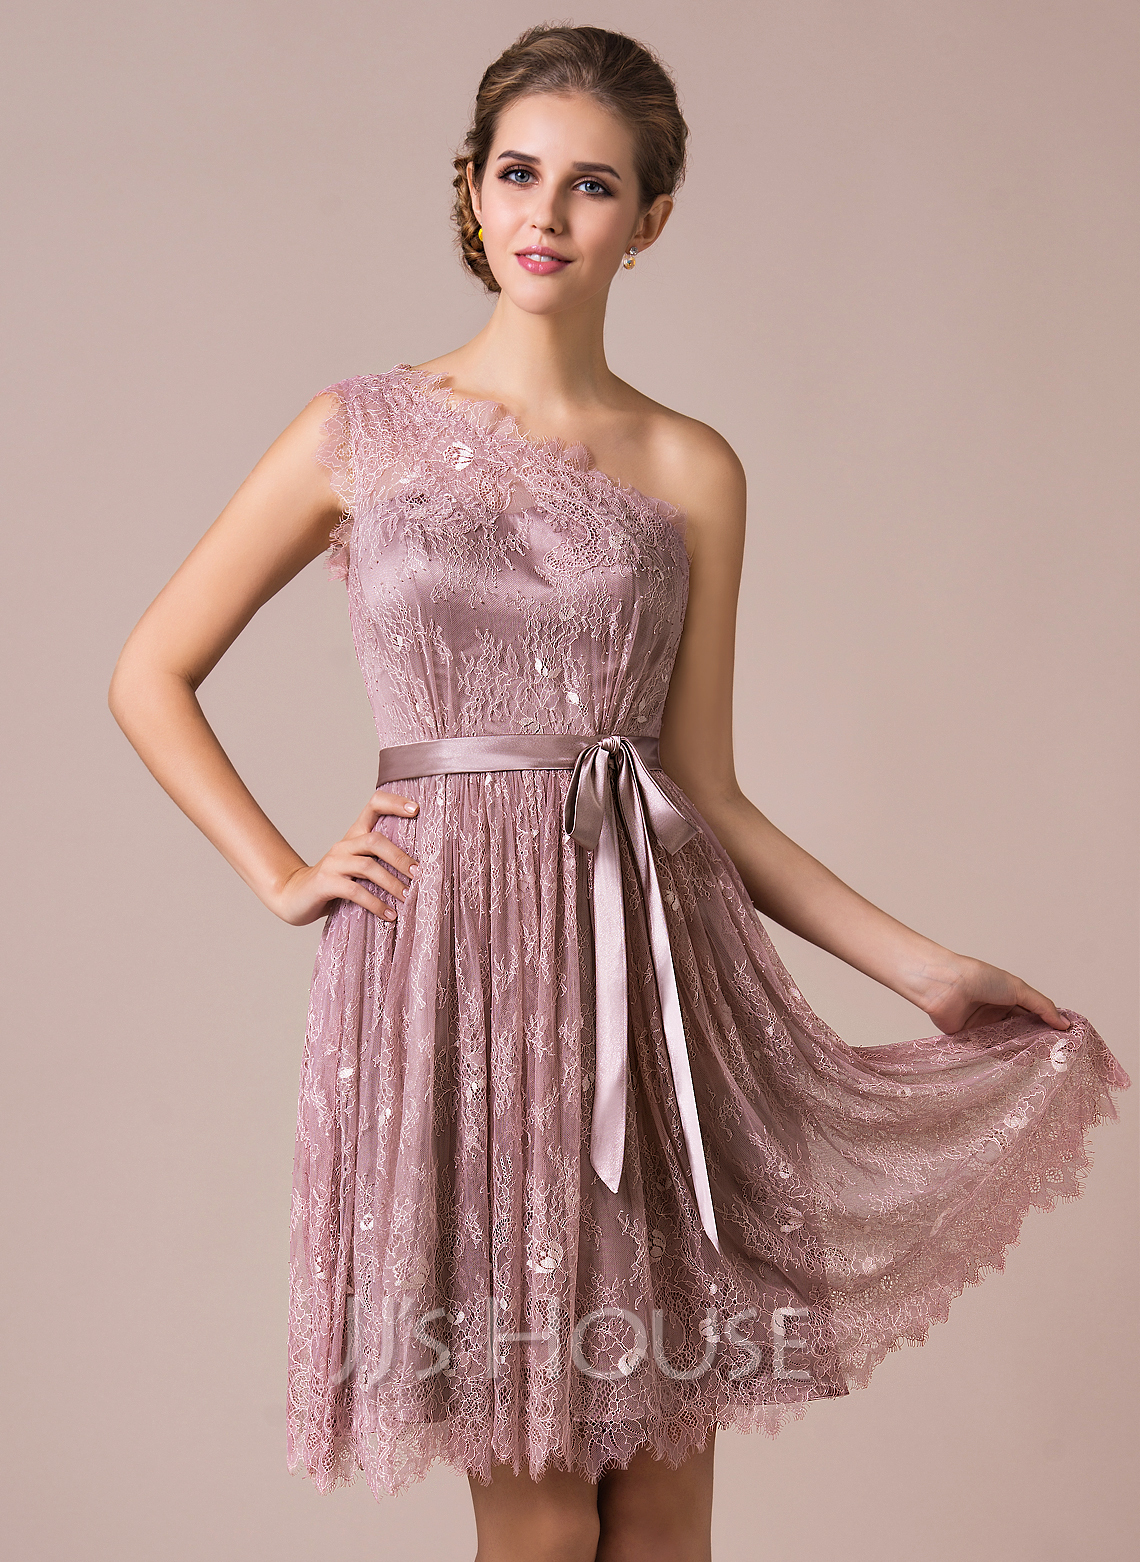 A-Line One-Shoulder Knee-length Charmeuse Lace Bridesmaid Dress